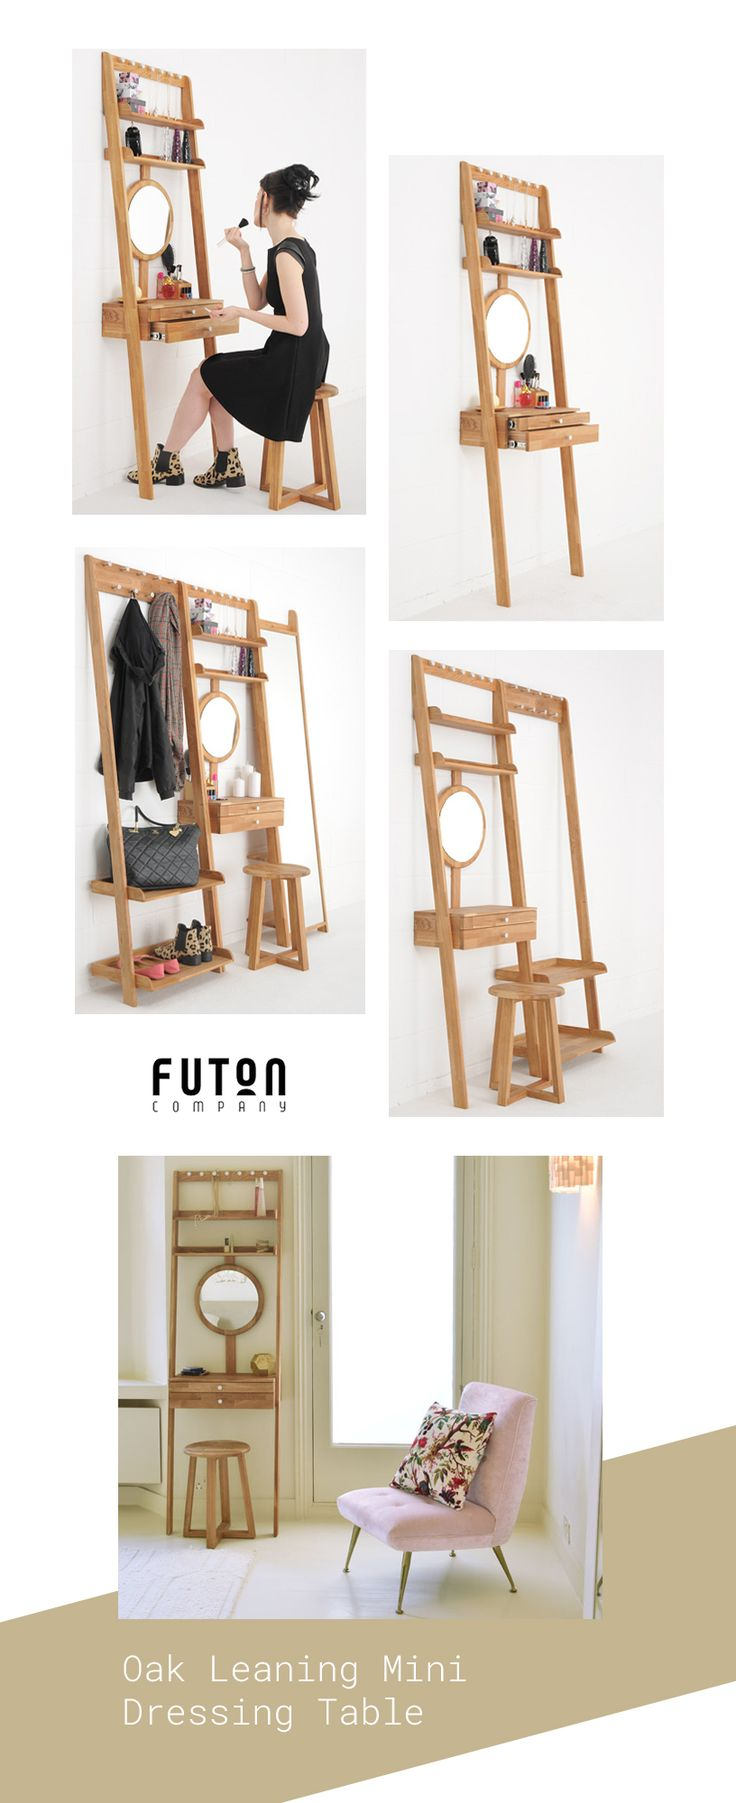 Designed to simply lean against the wall, this clever invention is easily moved around, ideal for small space living.  What's more, the mirror can be adjusted to accommodate any height.